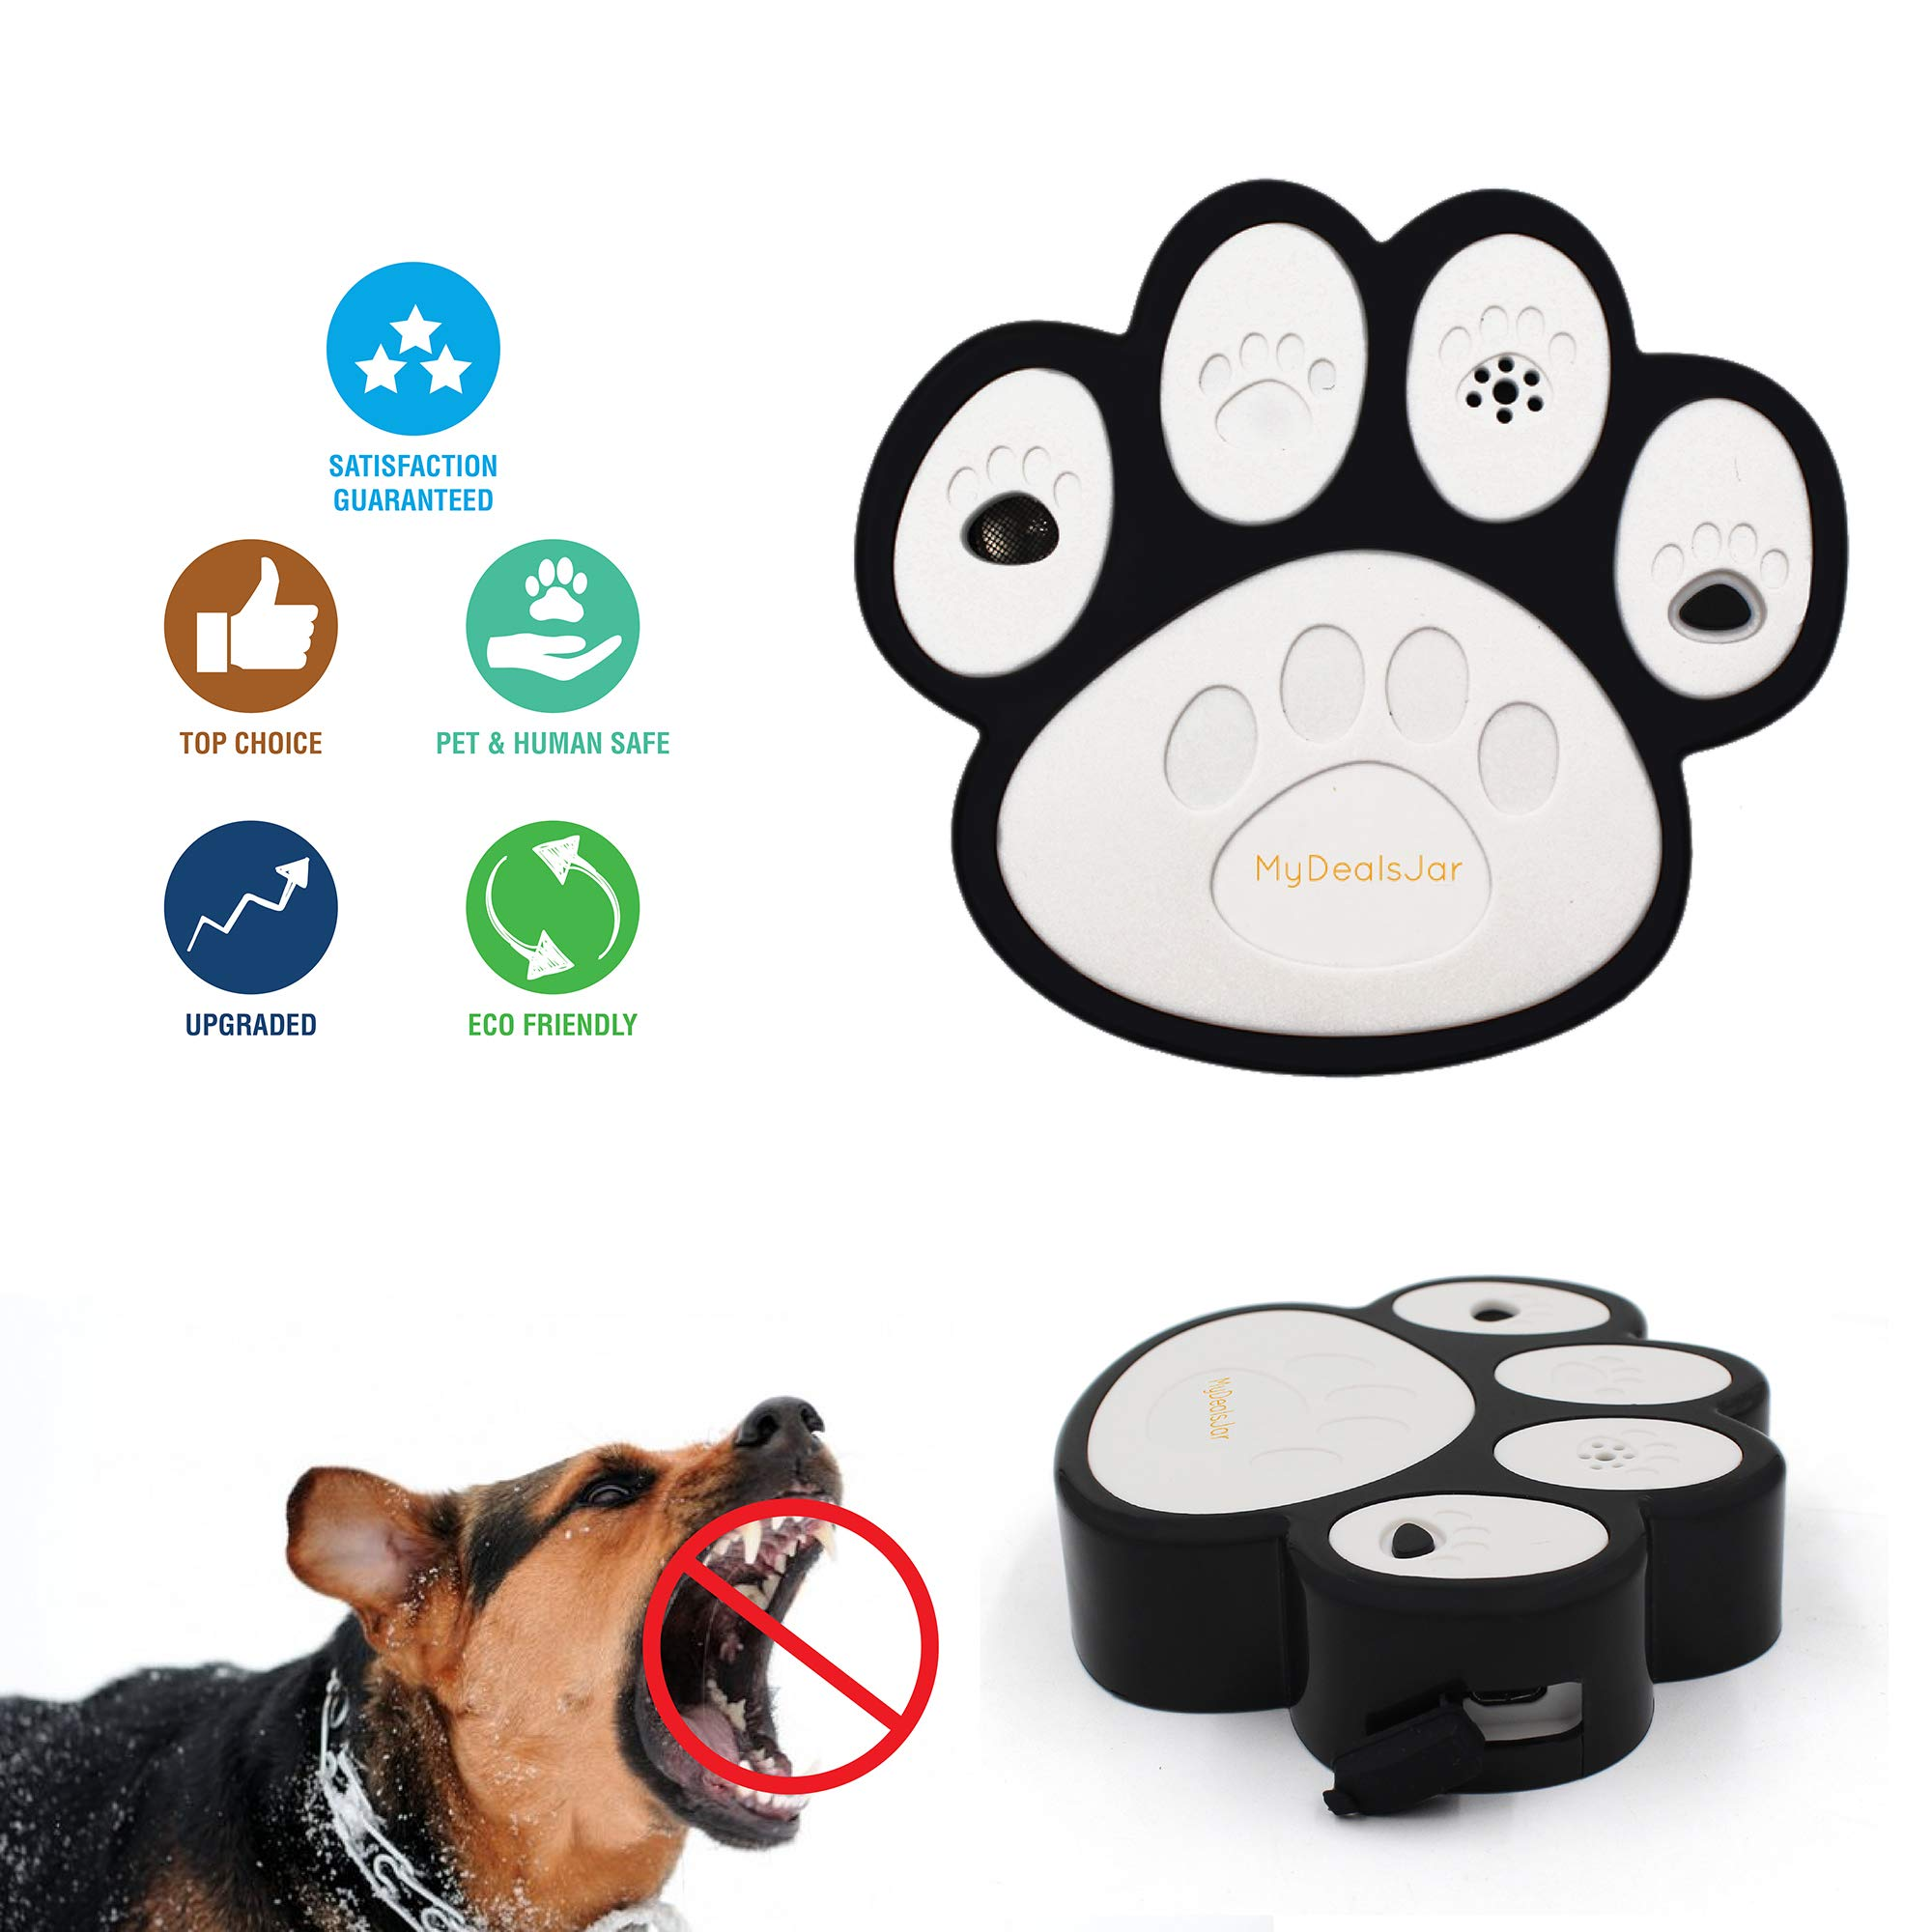 Ultrasonic anti barking device by MyDealsJar -handheld silencer tool/ training gadget/ bark control deterrent /stop dog bark machine outdoor and indoor /anti bark box Repeller for large & small dogs